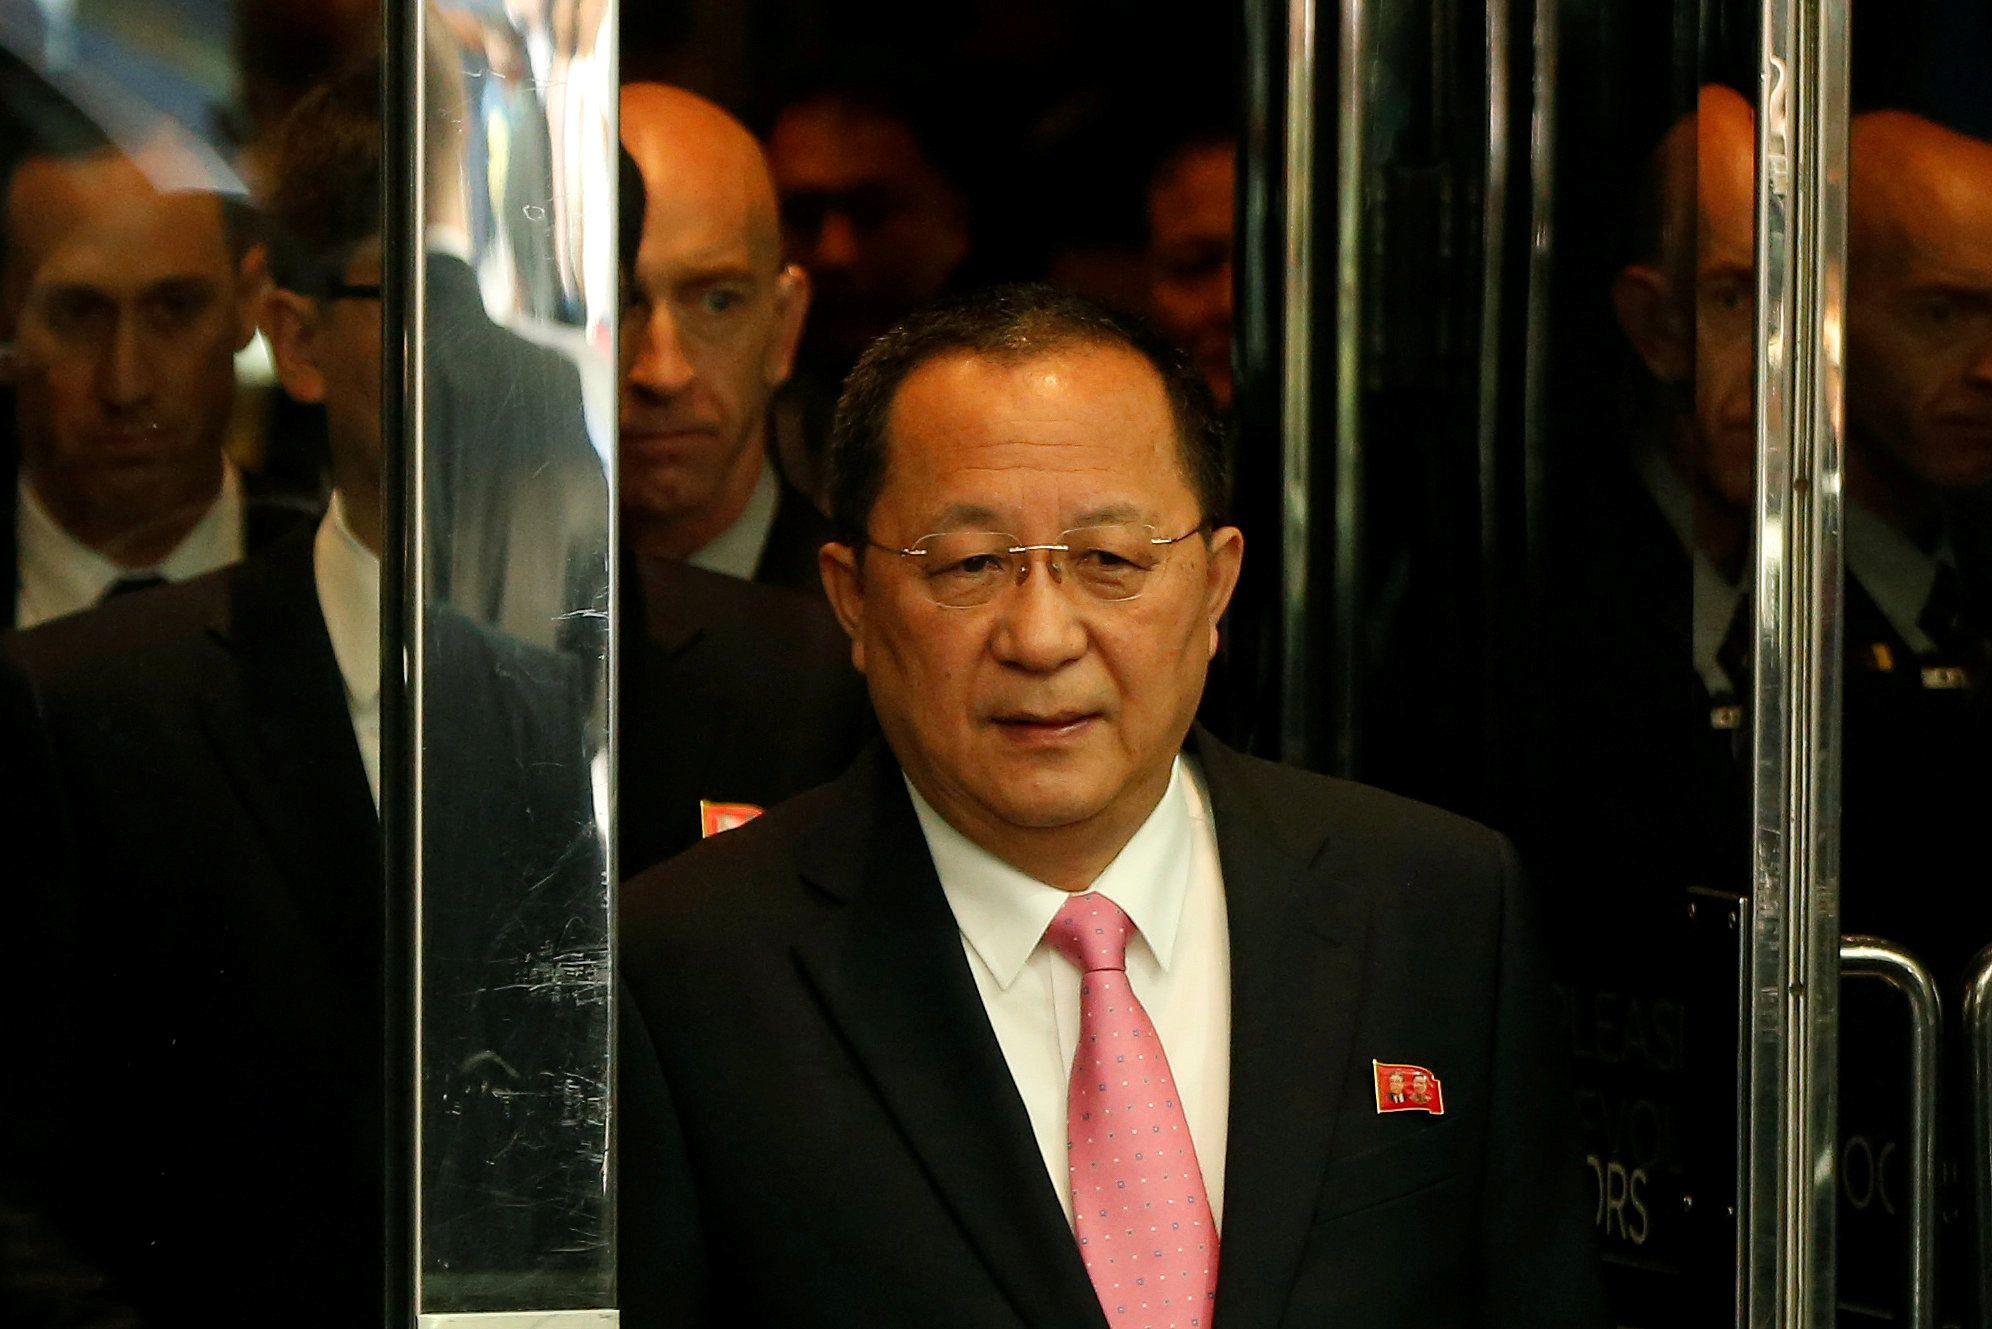 North Korean Foreign Minister Ri Yong Ho walks to speak to the media in New York onSept. 25.